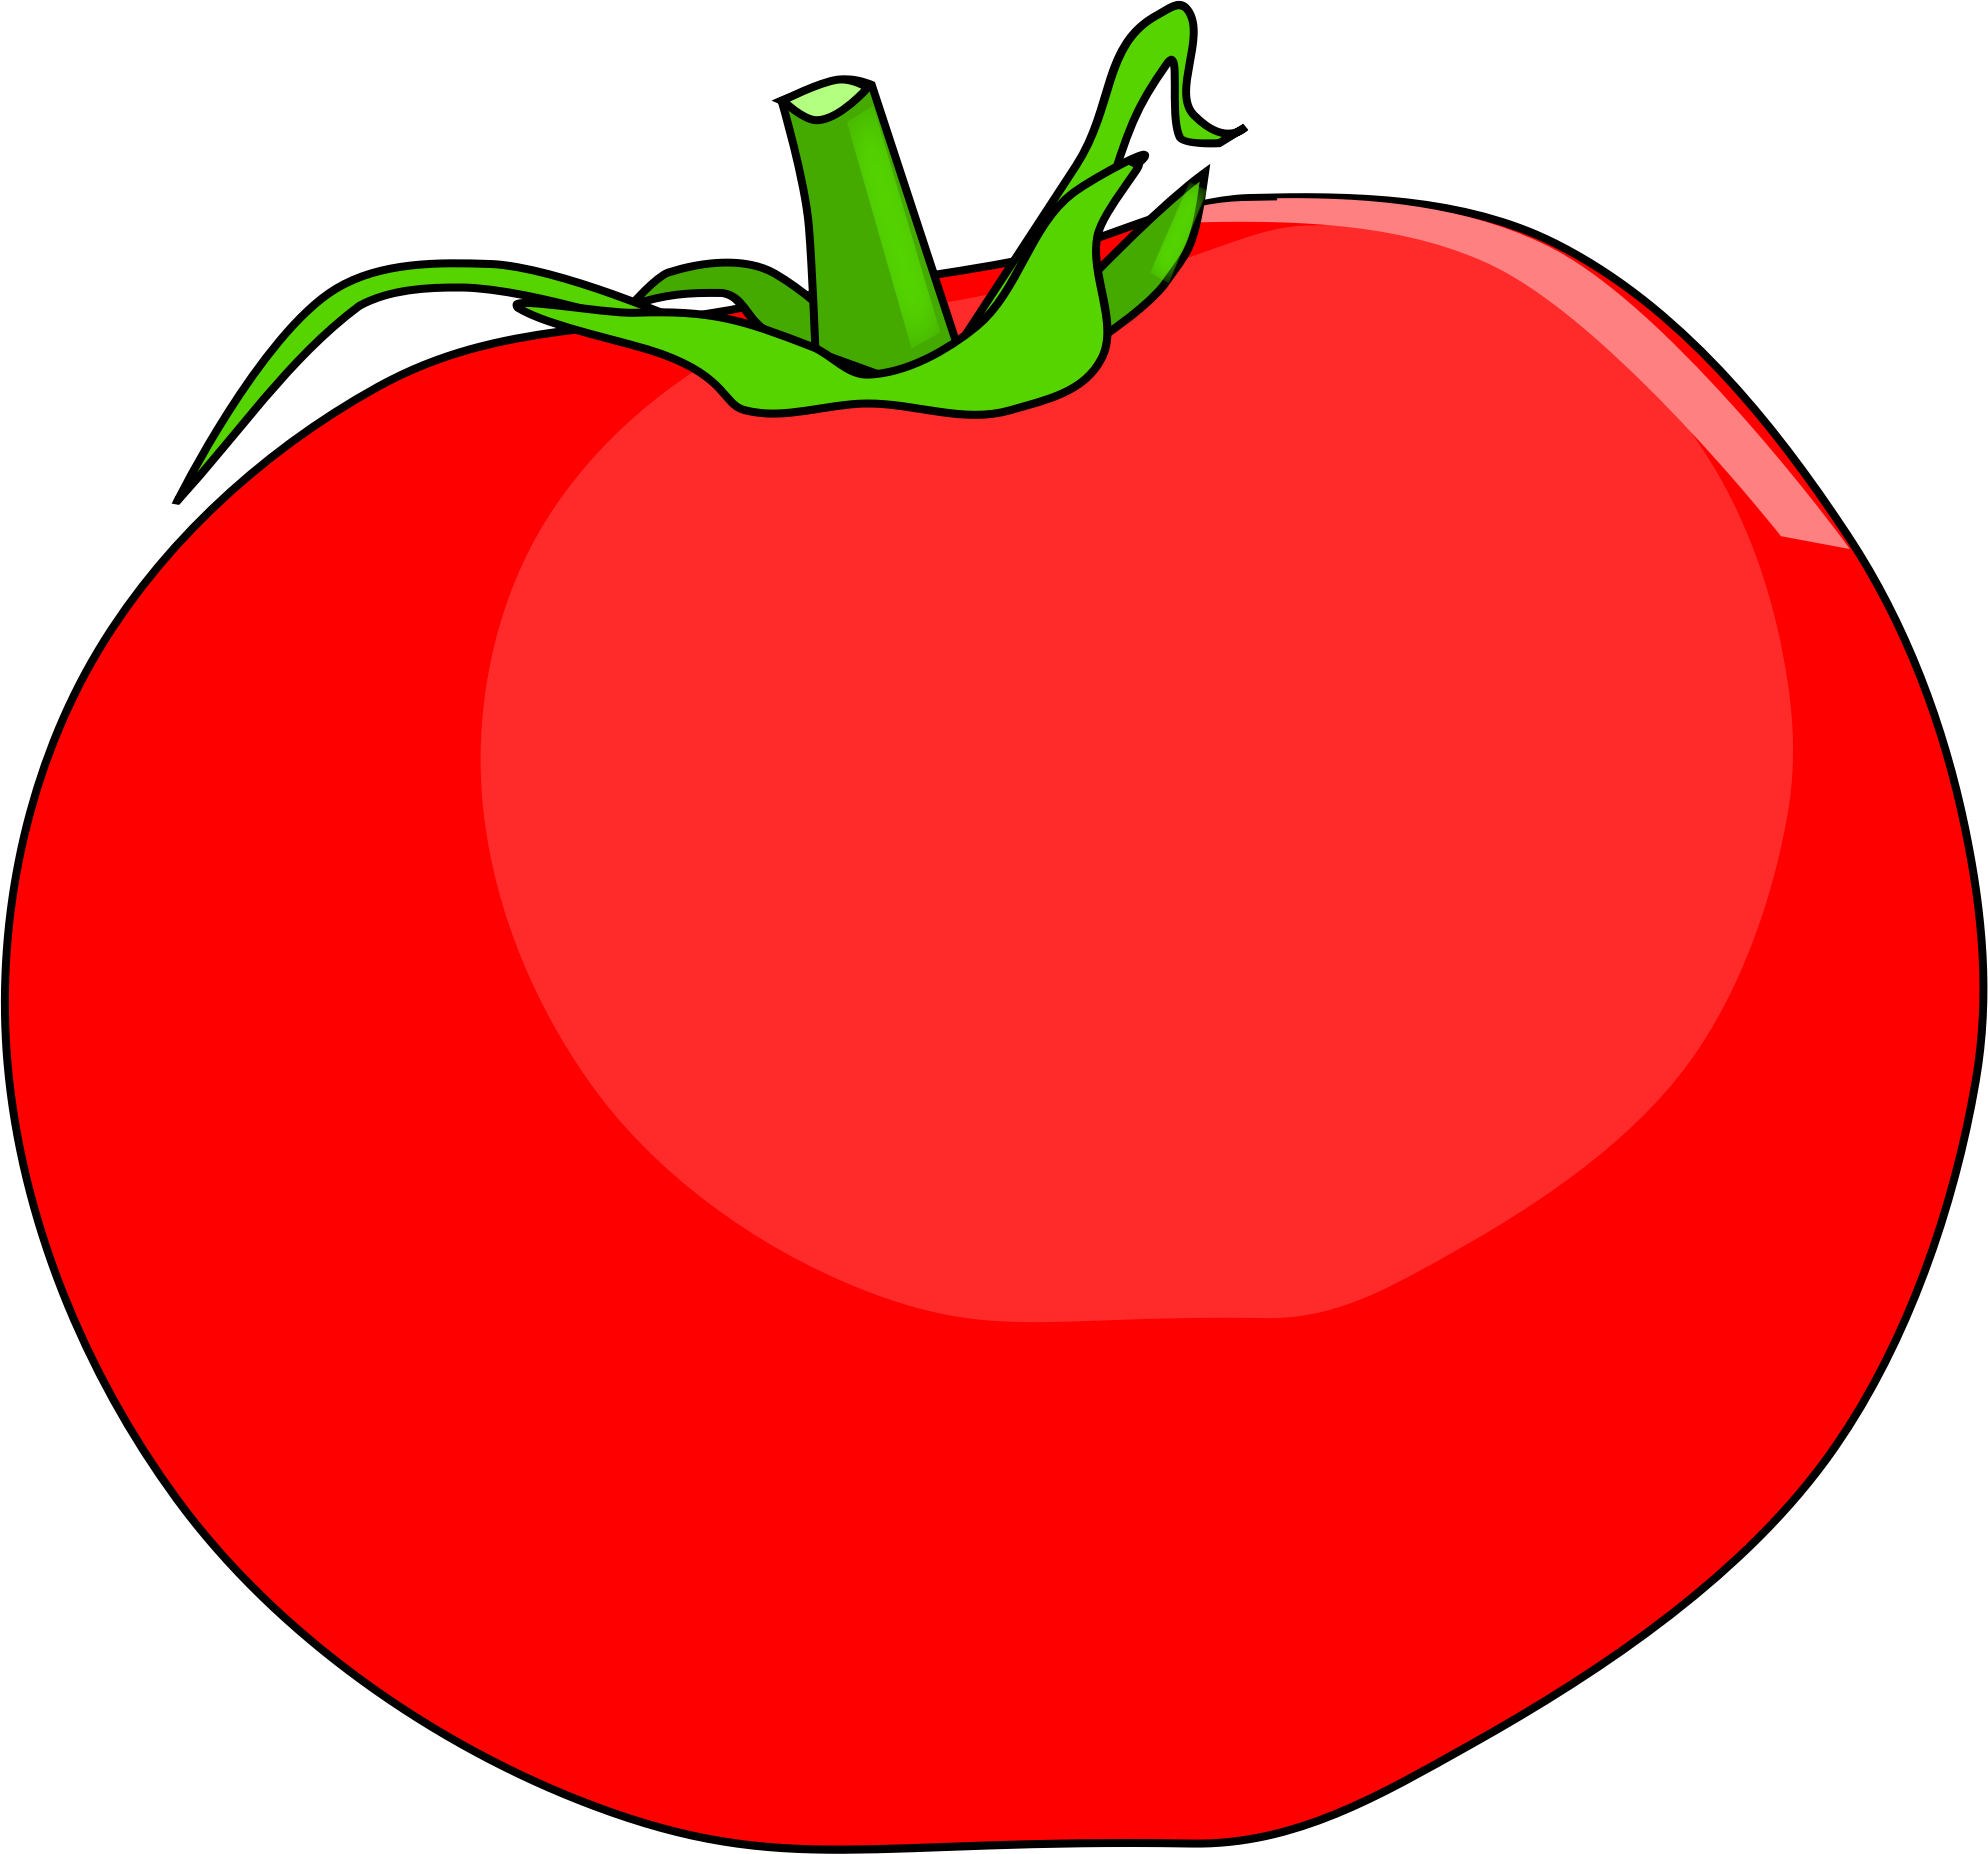 Tomato Clipart Transparent.